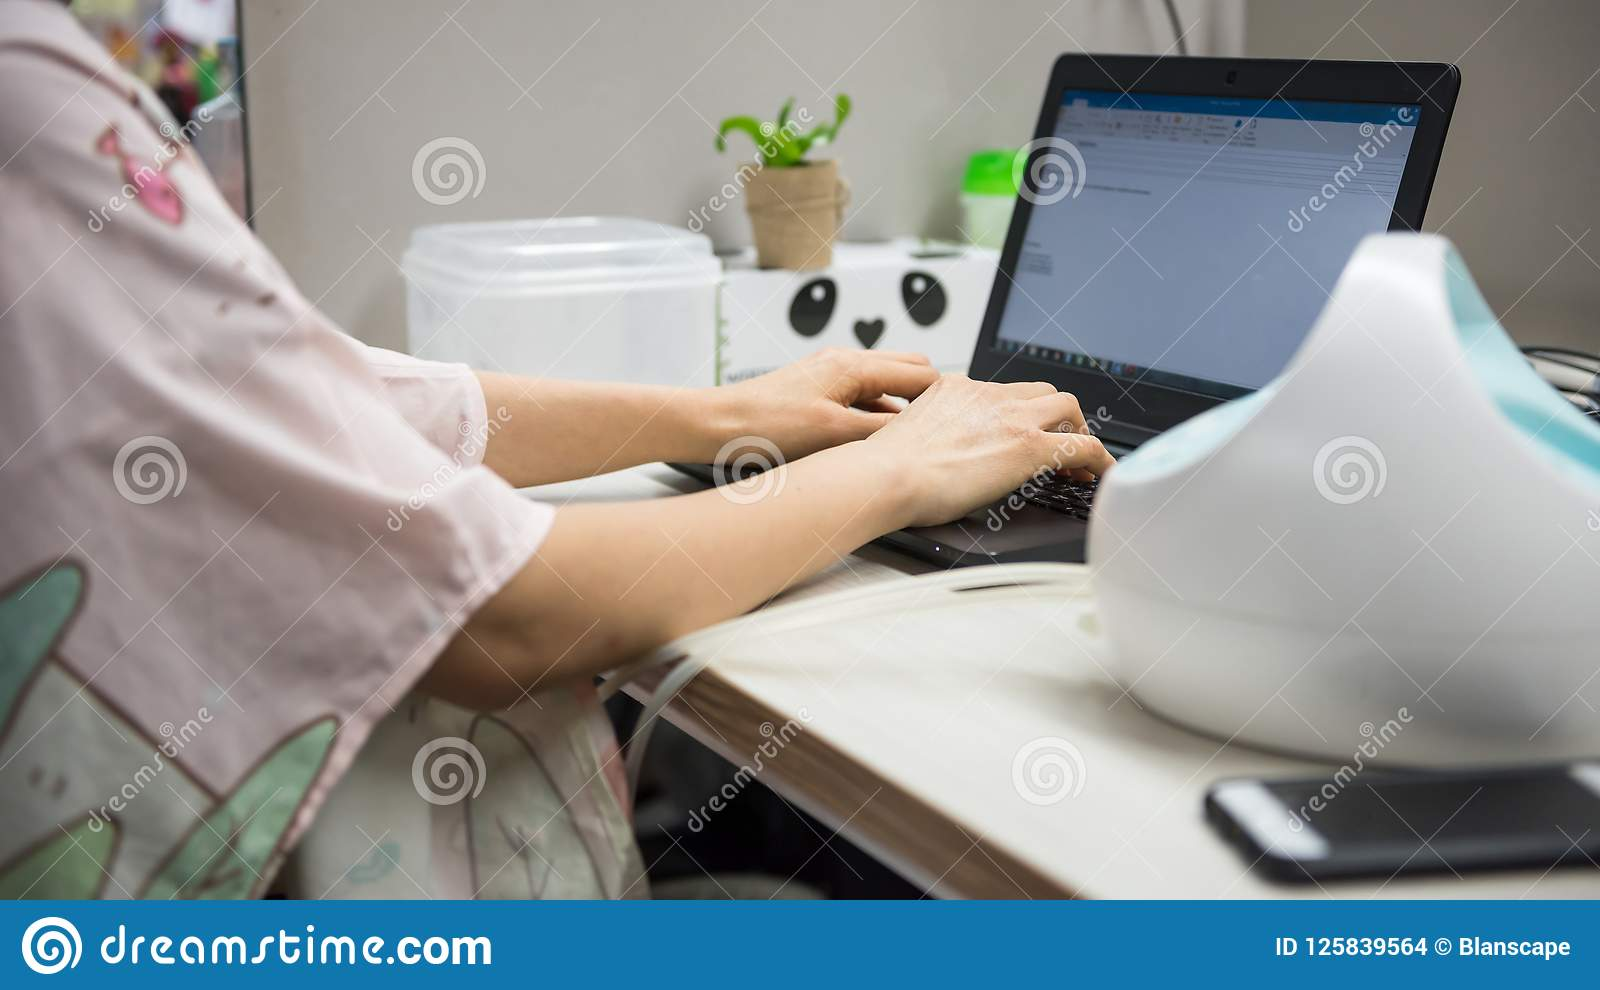 Pump Breastmilk And Work In Office Stock Photo - Image of